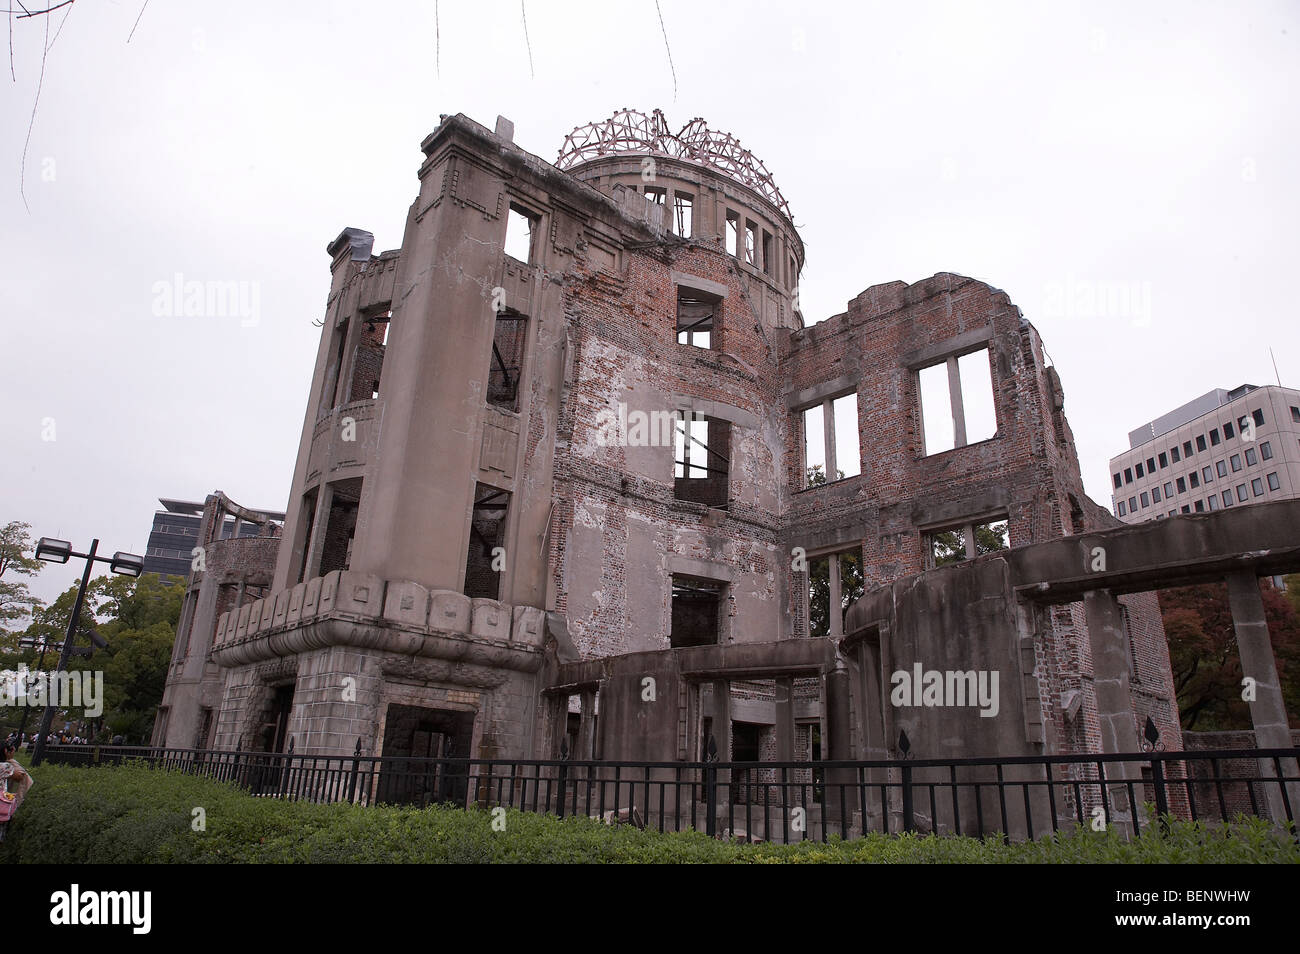 JAPAN The atomic dome, where the atom bomb exploded, Hiroshima. photo by Sean Spraqgue 2008 - Stock Image